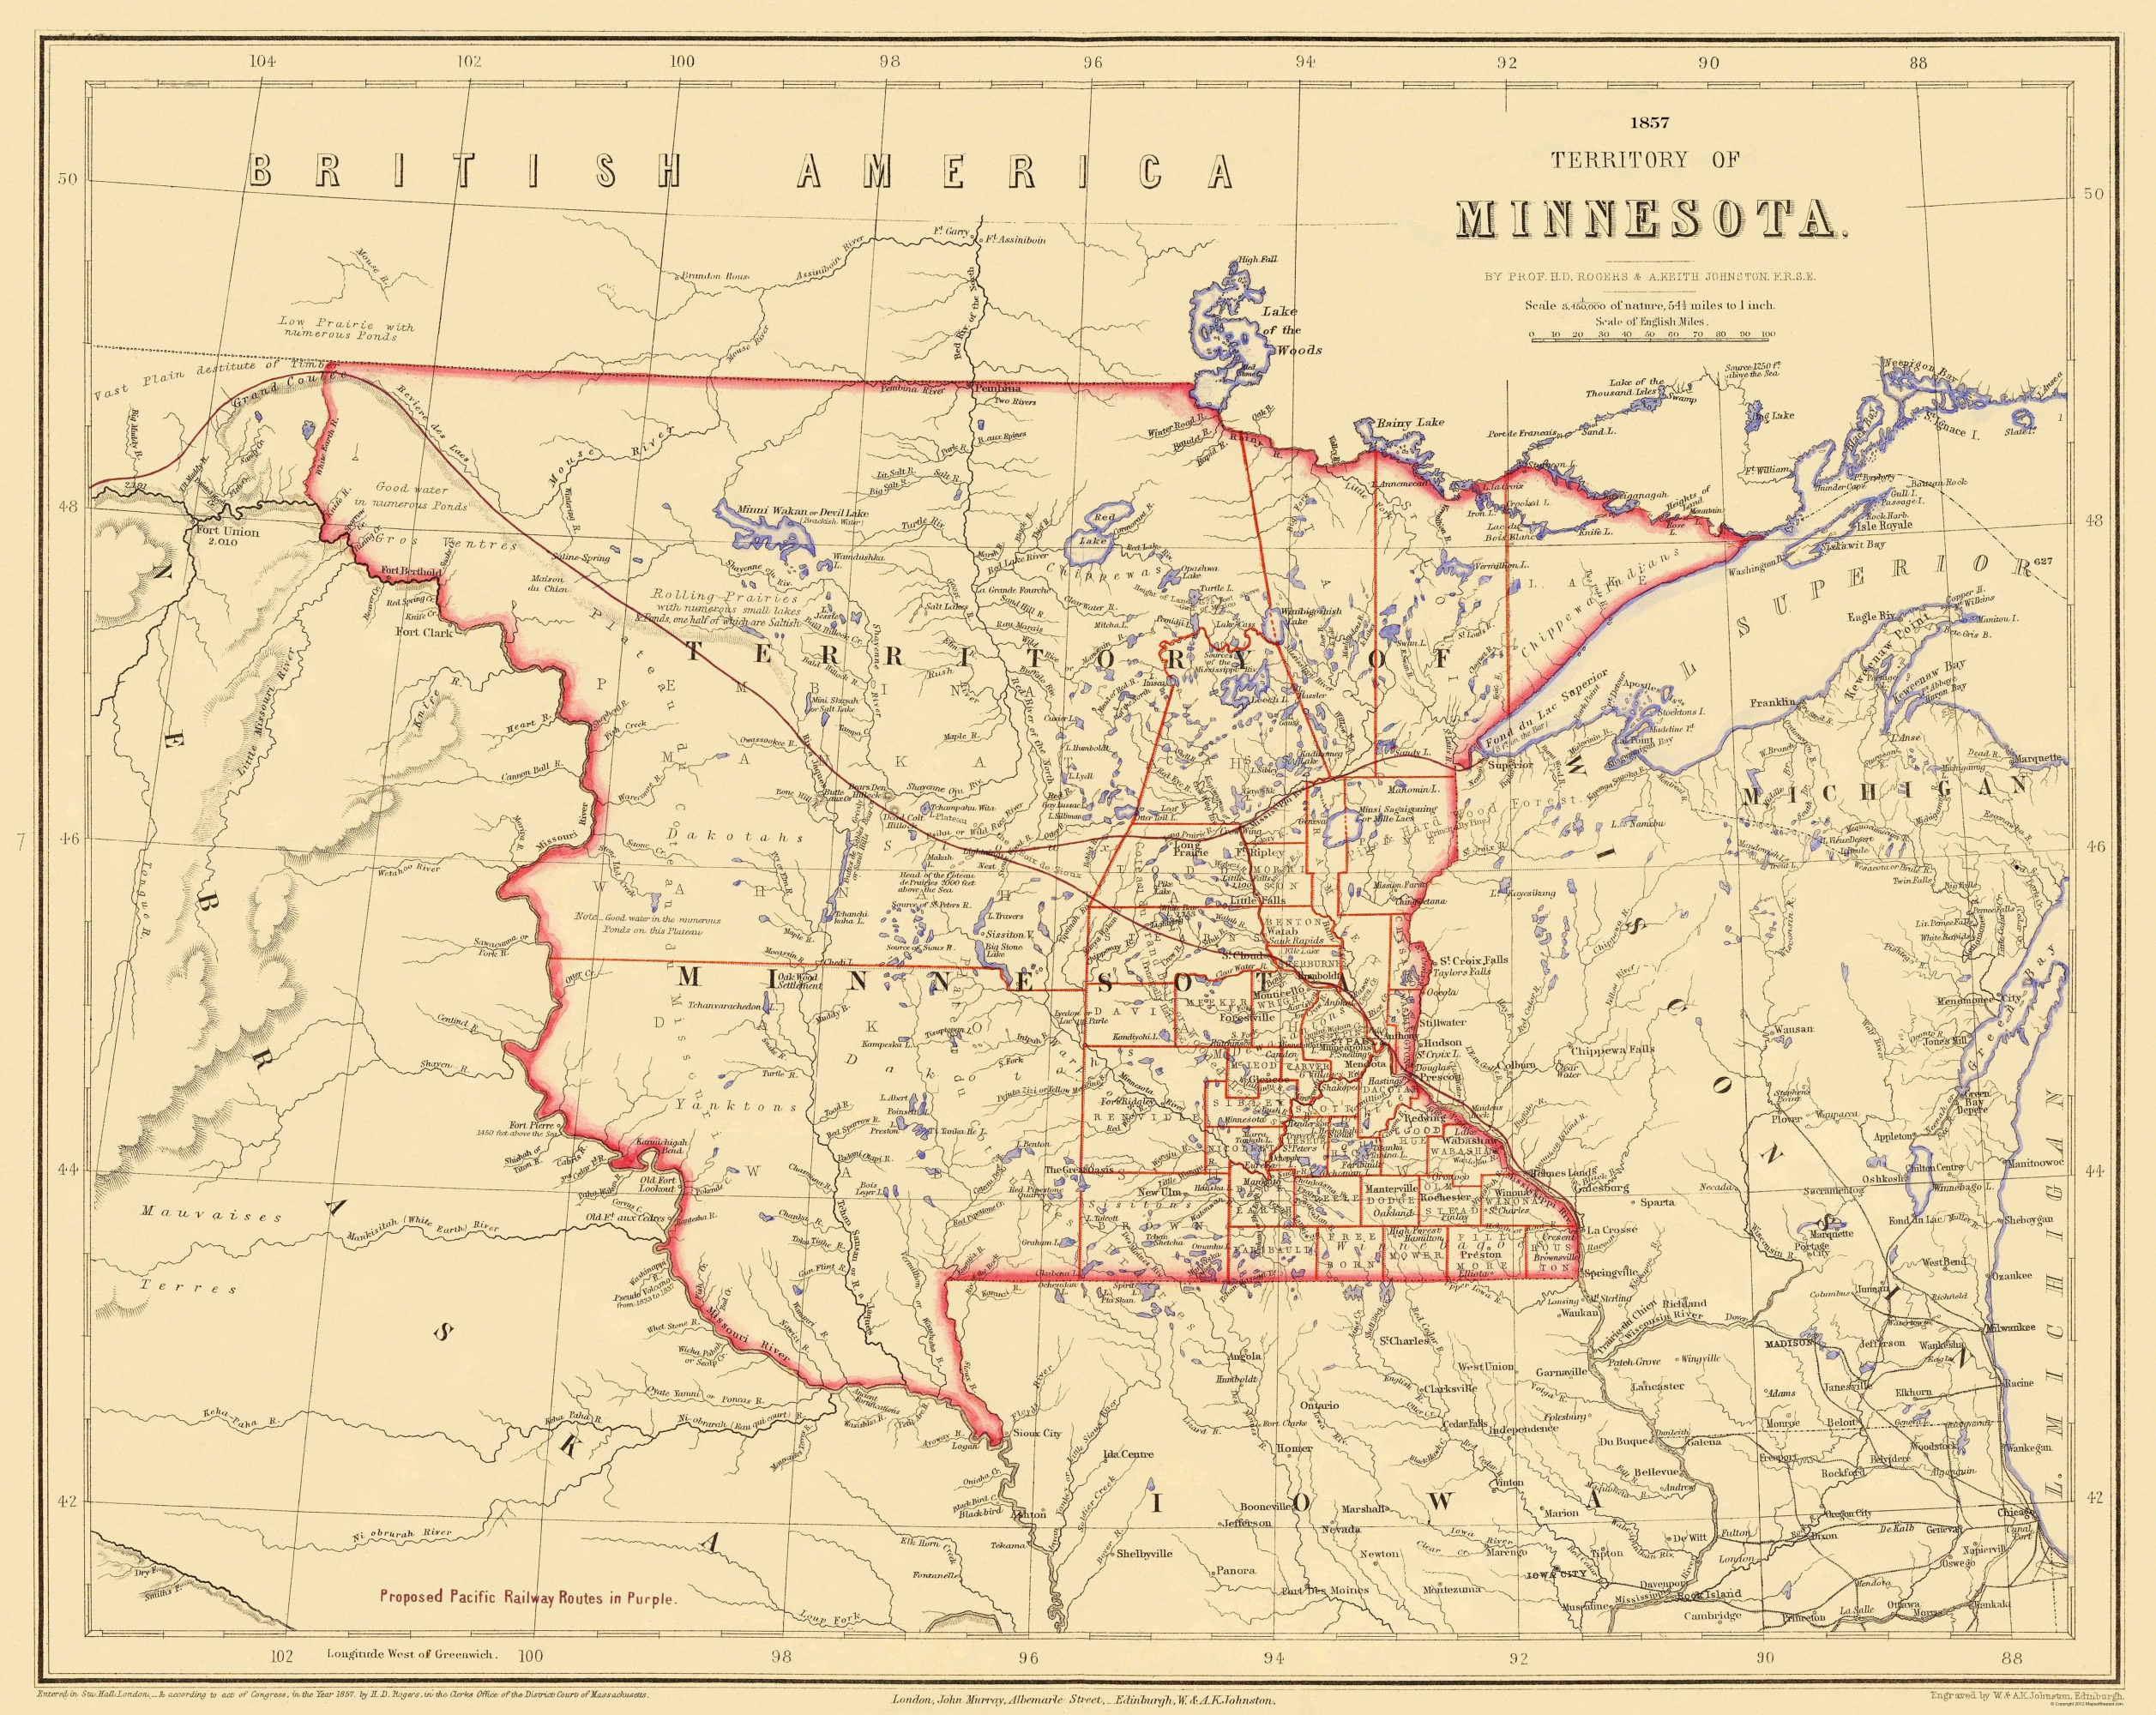 Old State Map - Minnesota Territory - Rogers 1857